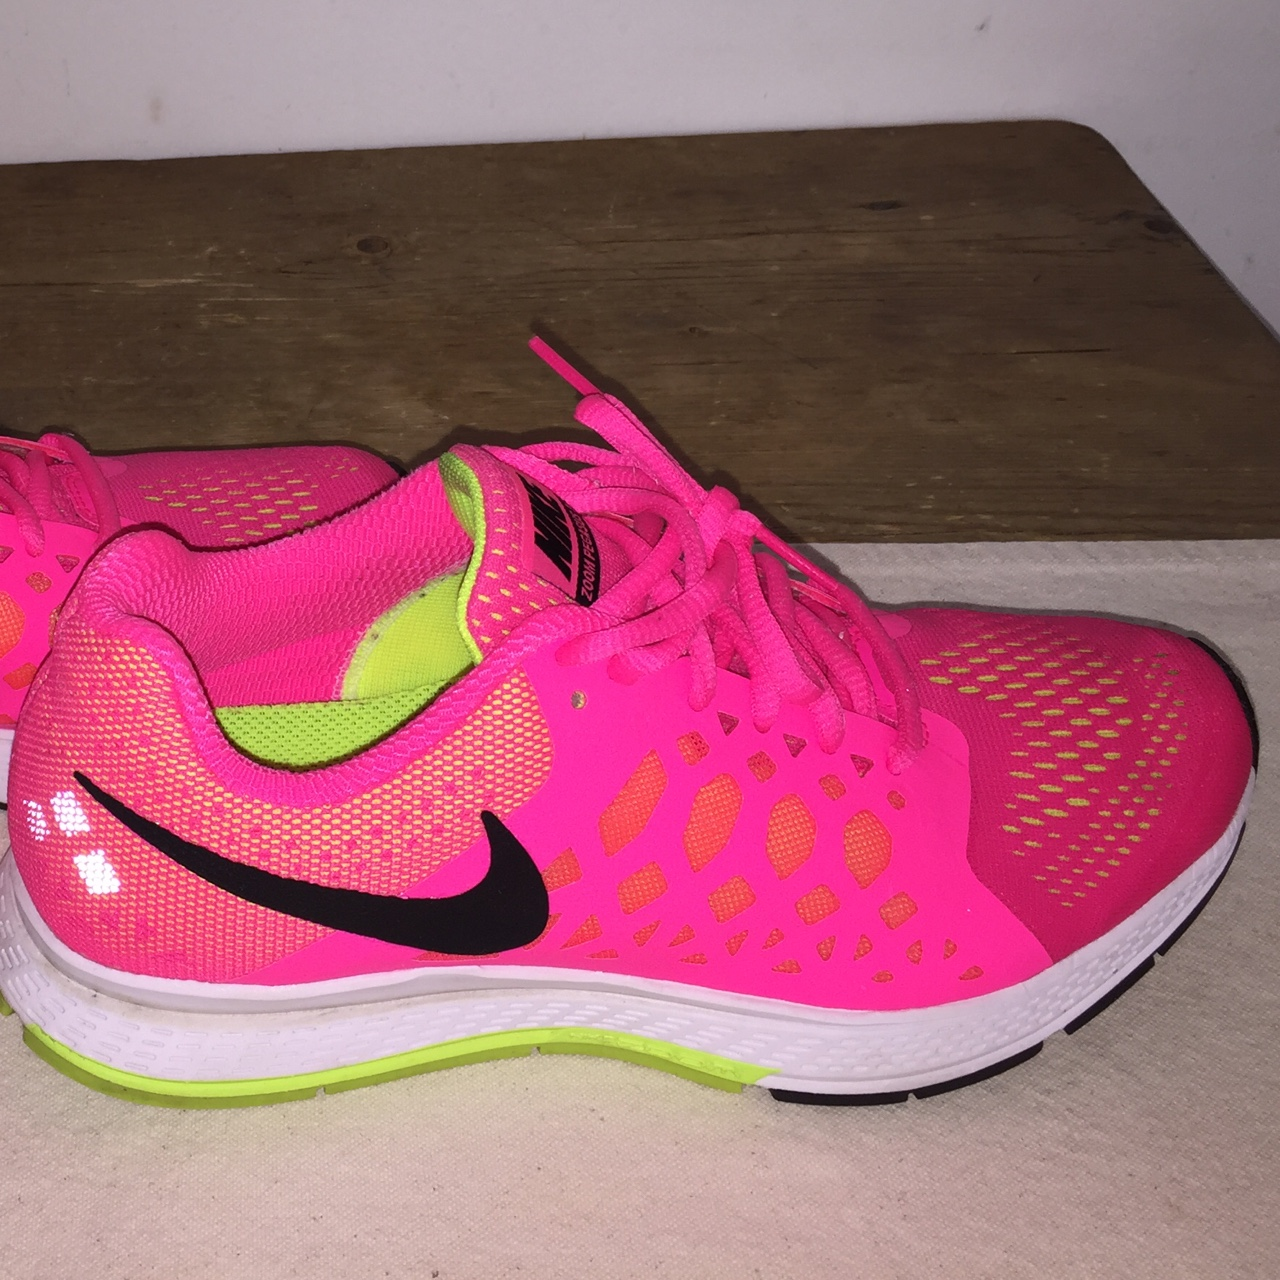 speical offer 50% off where can i buy Women's Hot Pink Nikes - Great Condition - Worn Once ...